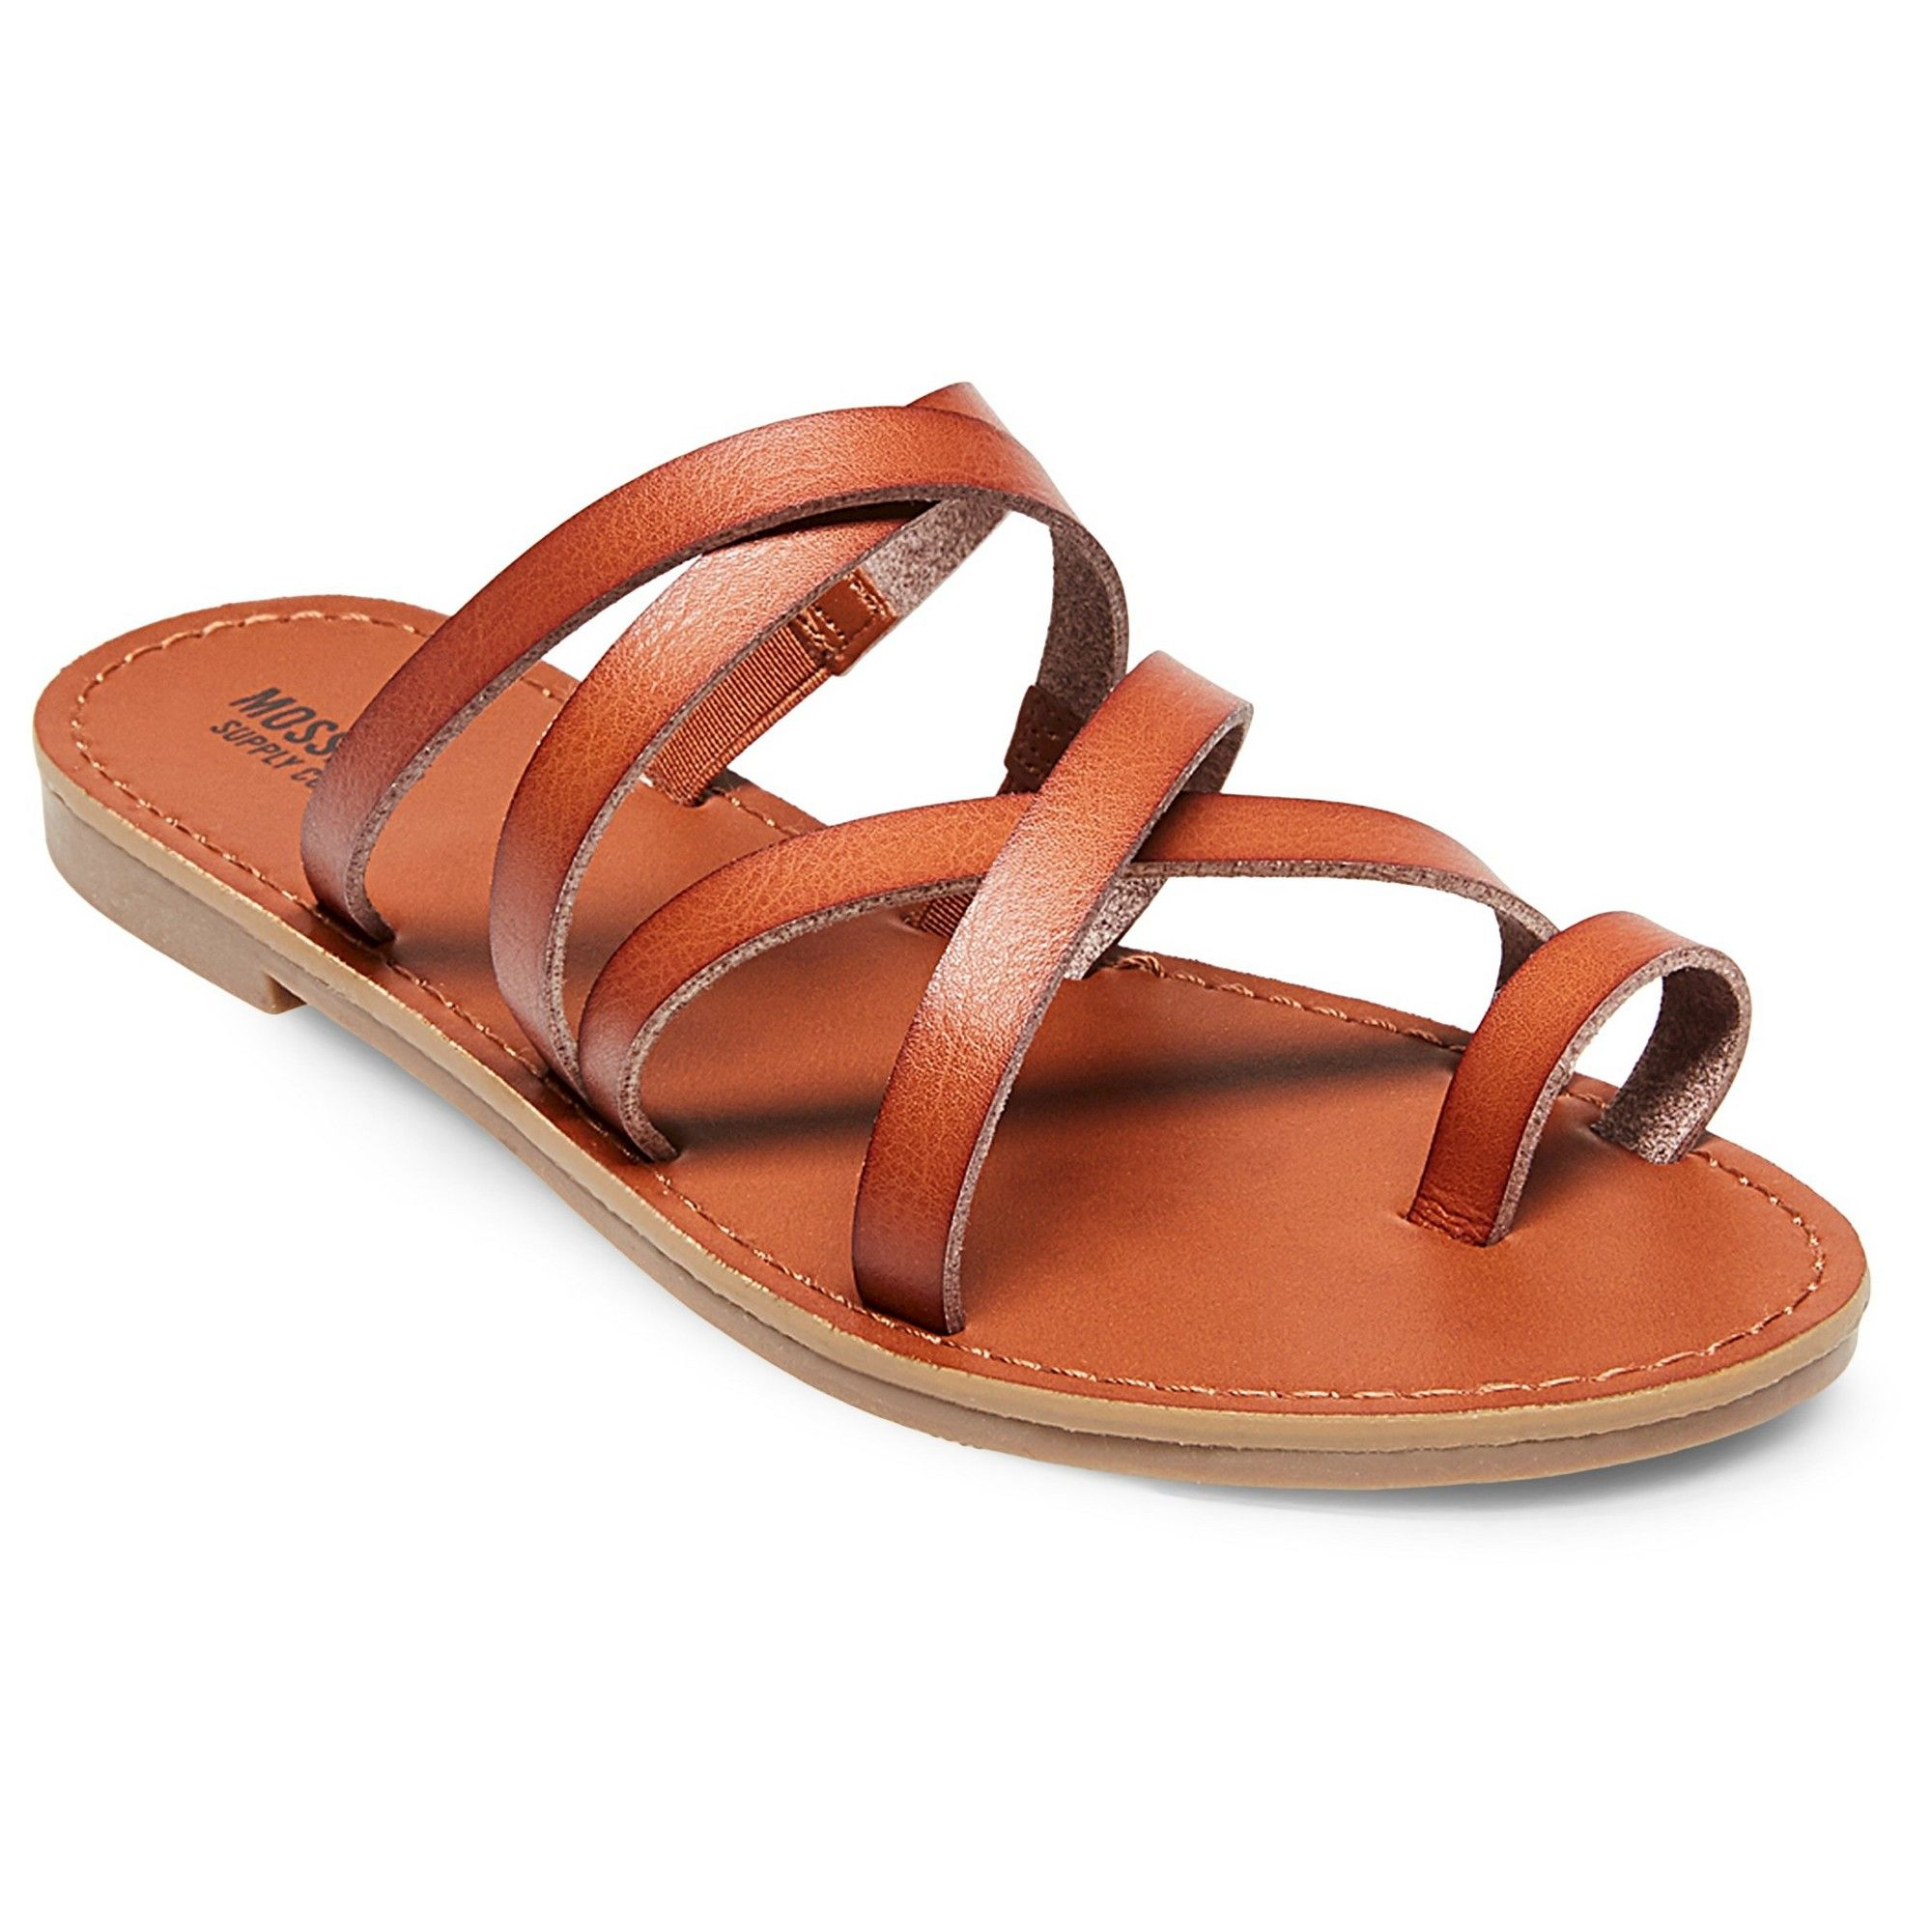 226fb3f0cfed Women s Lina Slide Sandals - Mossimo Supply Co. Cognac (Red) 9.5 ...